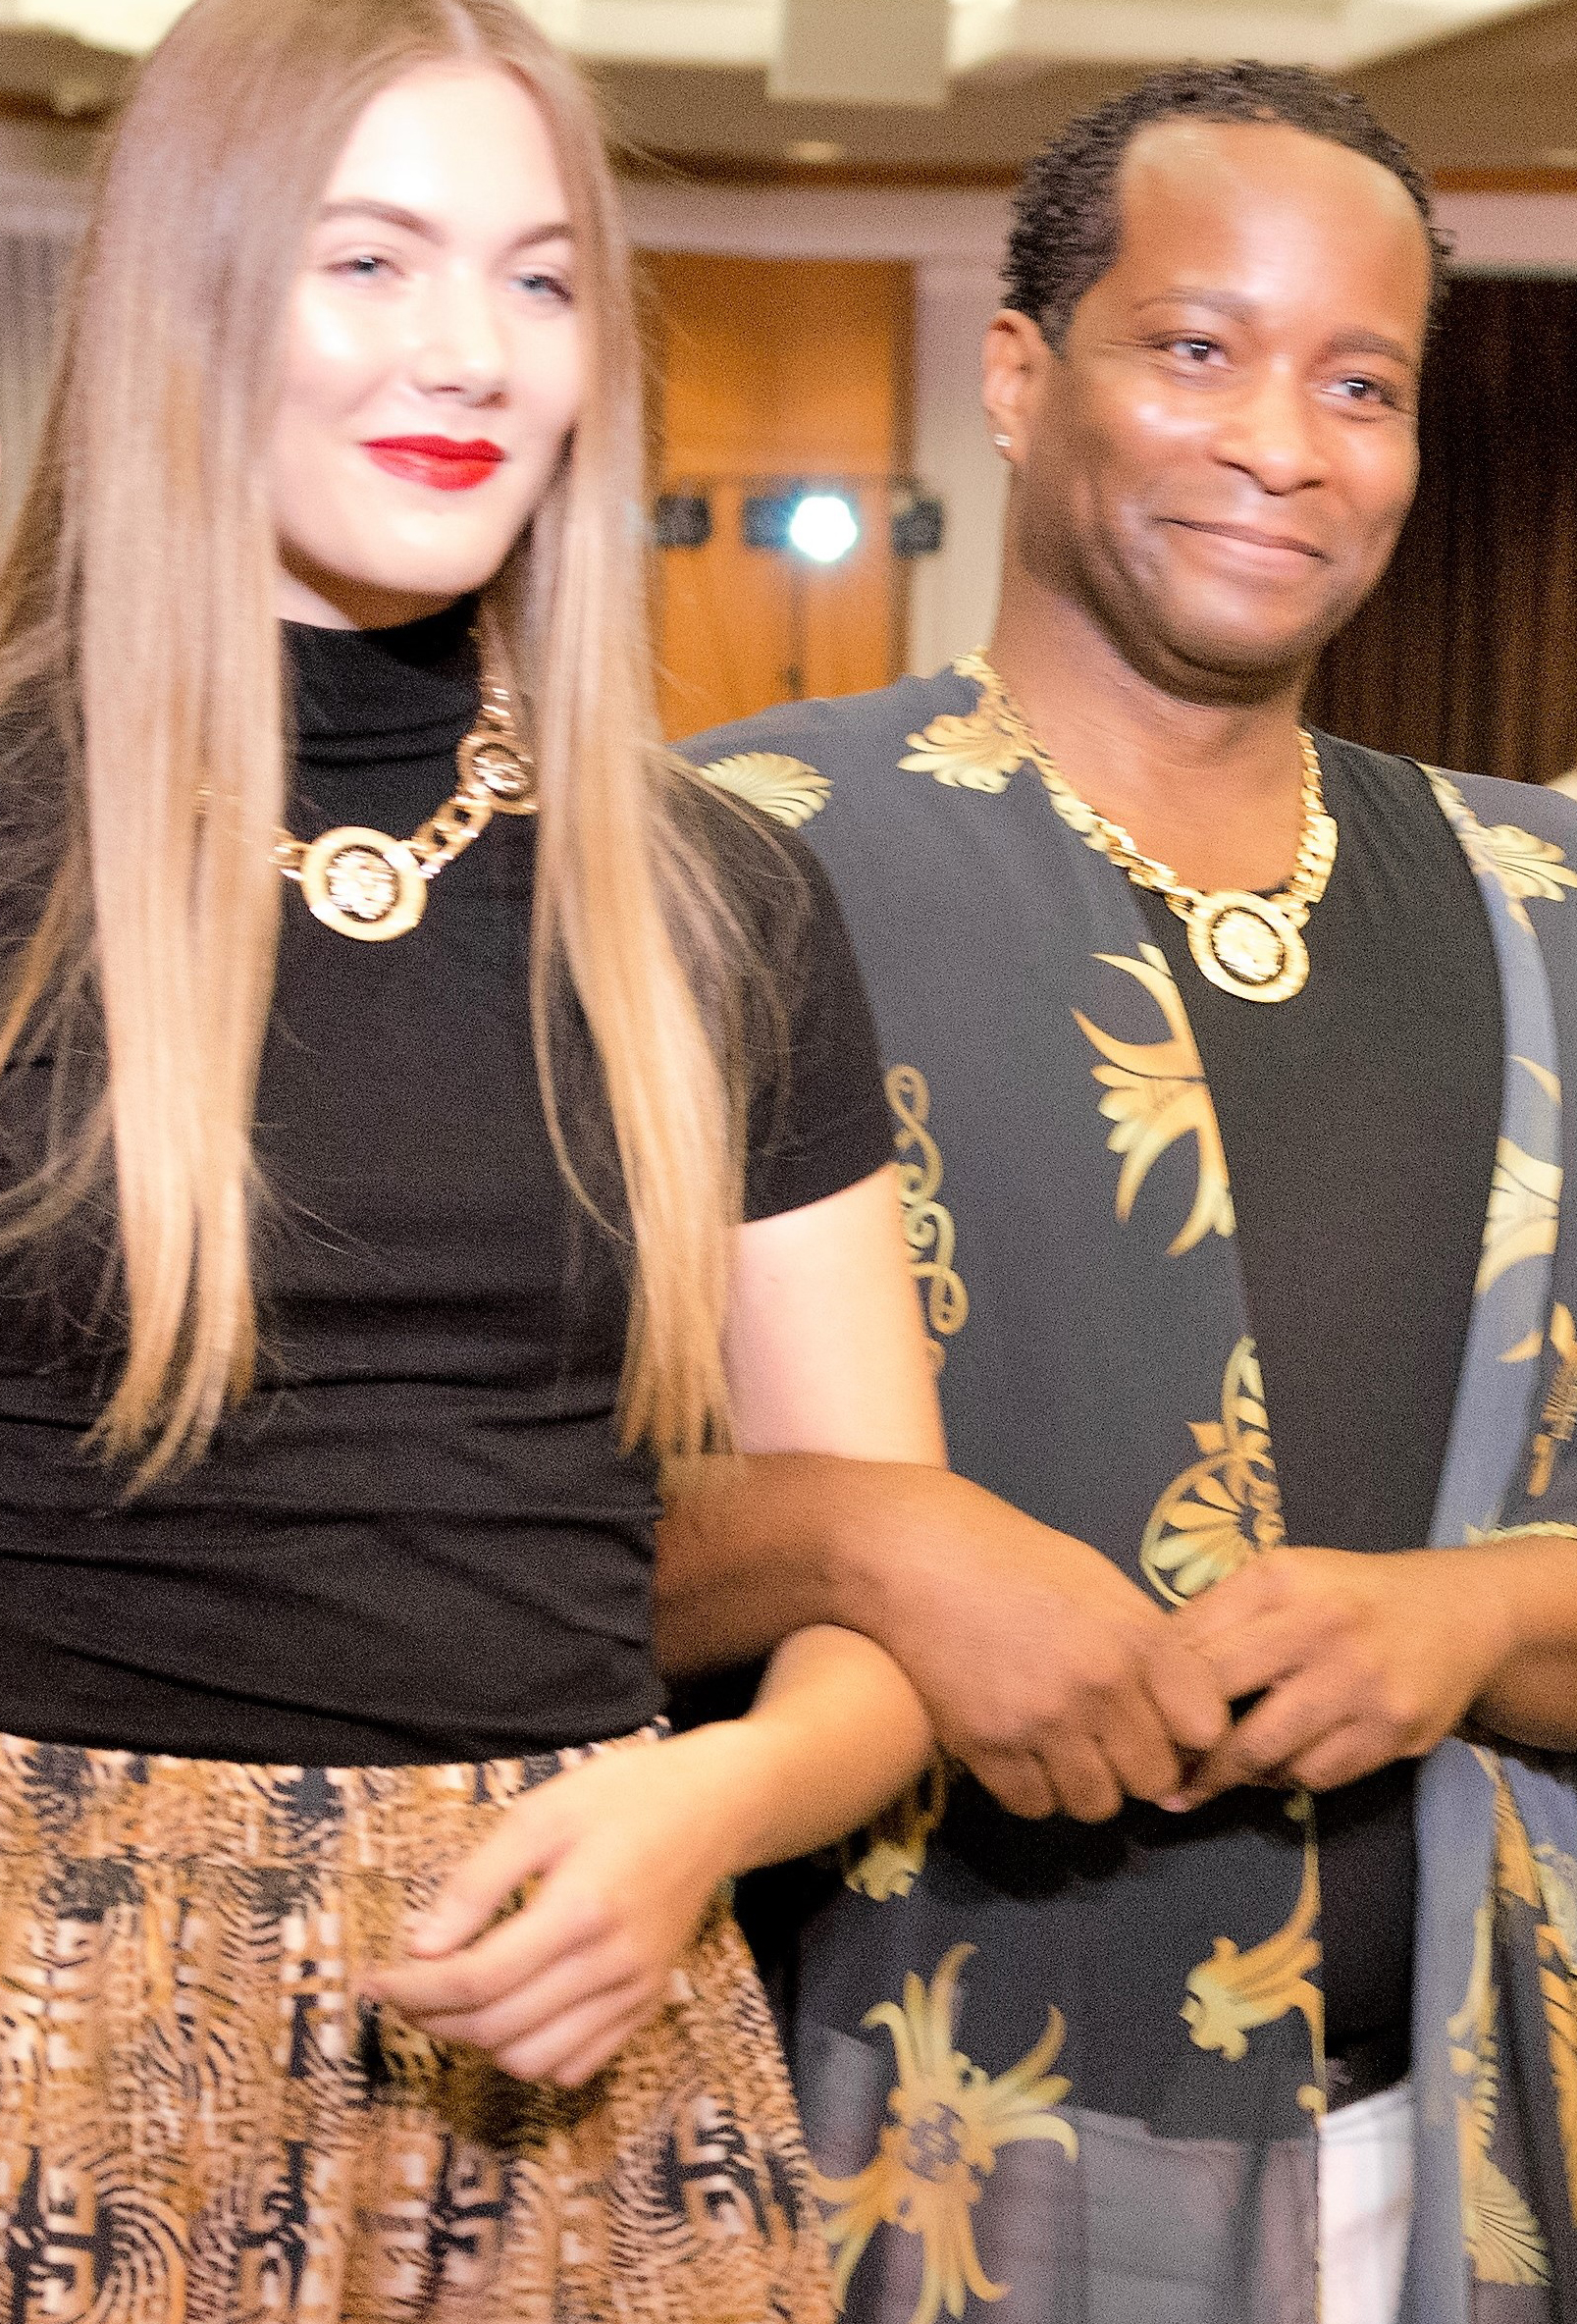 Tony Vincente and his 'Top Model' at the La Saphuers Fashion Show